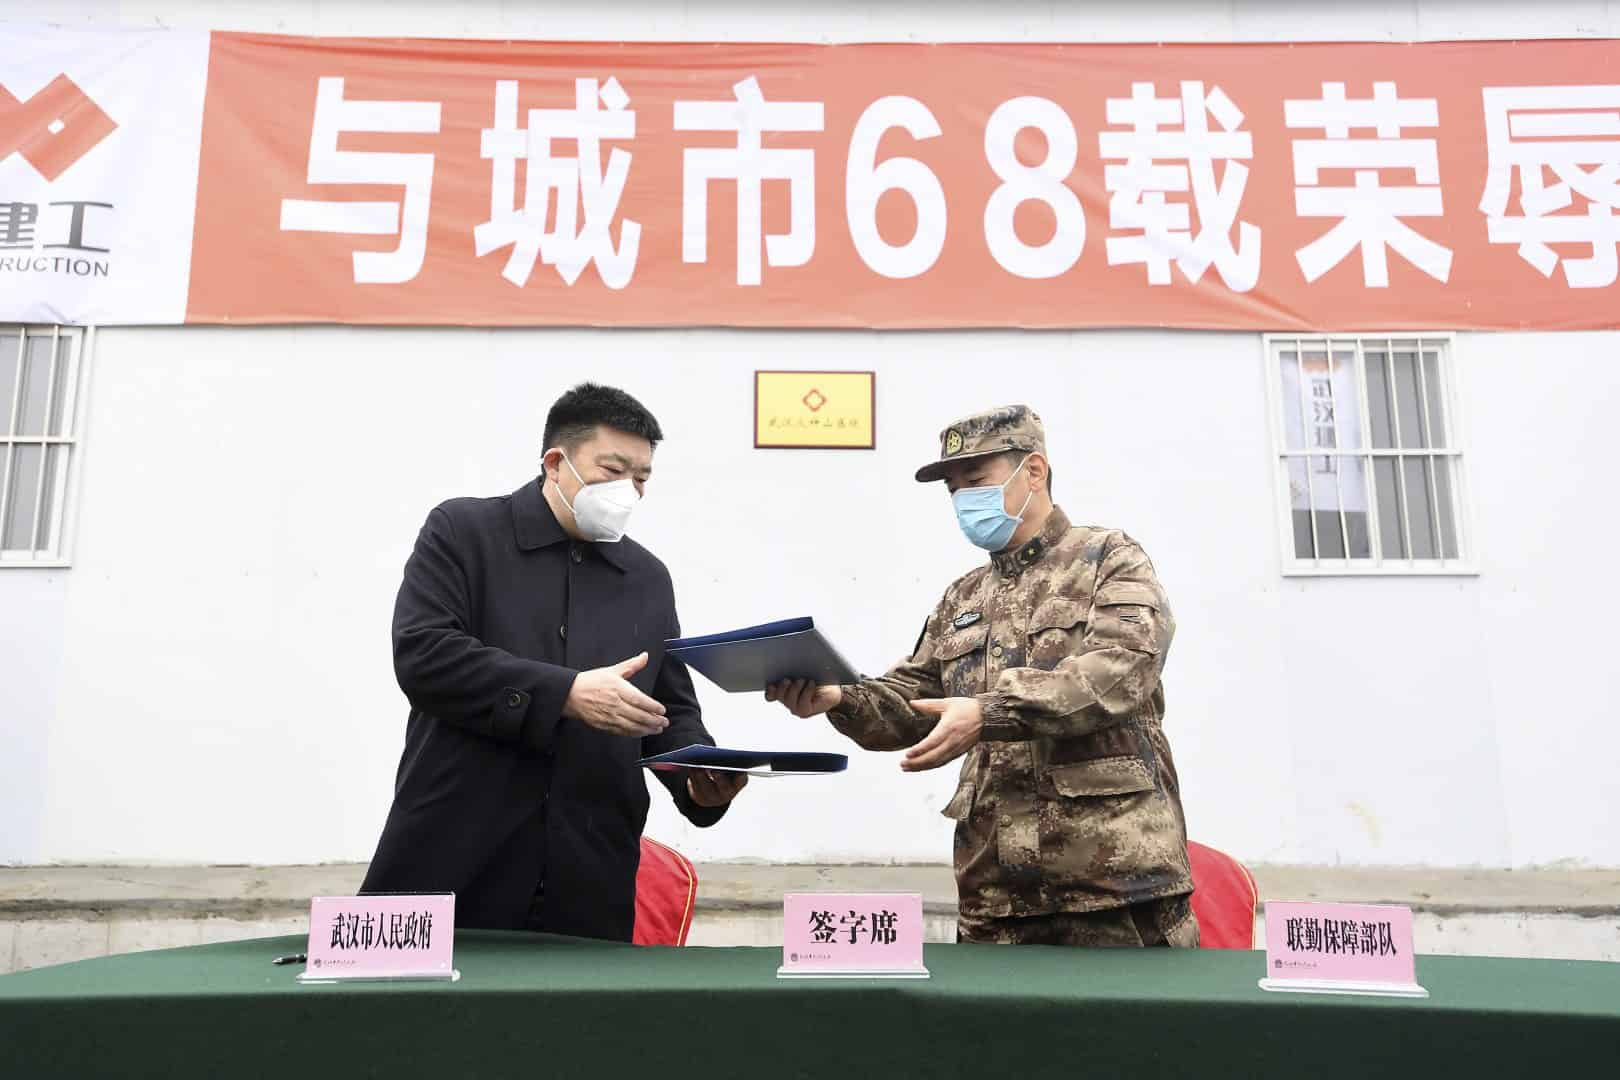 Zhou Xianwang, left, the mayor of Wuhan, exchanges documents with Bai Zhongbin, right, deputy commander-in-chief of China's People's Liberation Army (PLA) Joint Logistic Support Force, during a handover ceremony at the Huoshenshan temporary field hospital (AP)